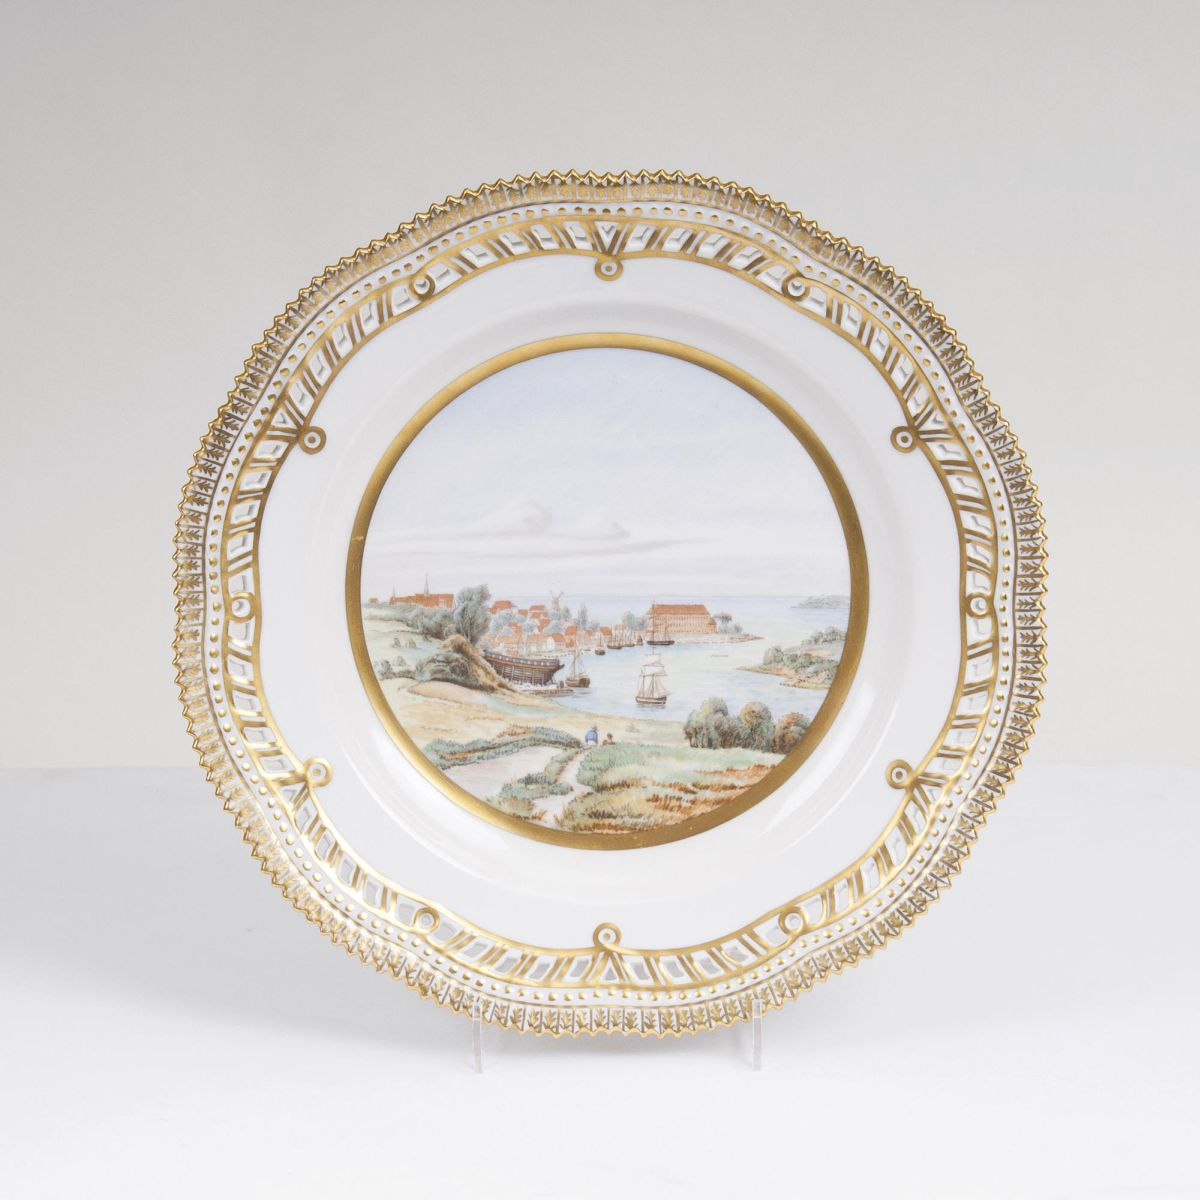 A Flora Danica Plate with View of Sonderborg Castle